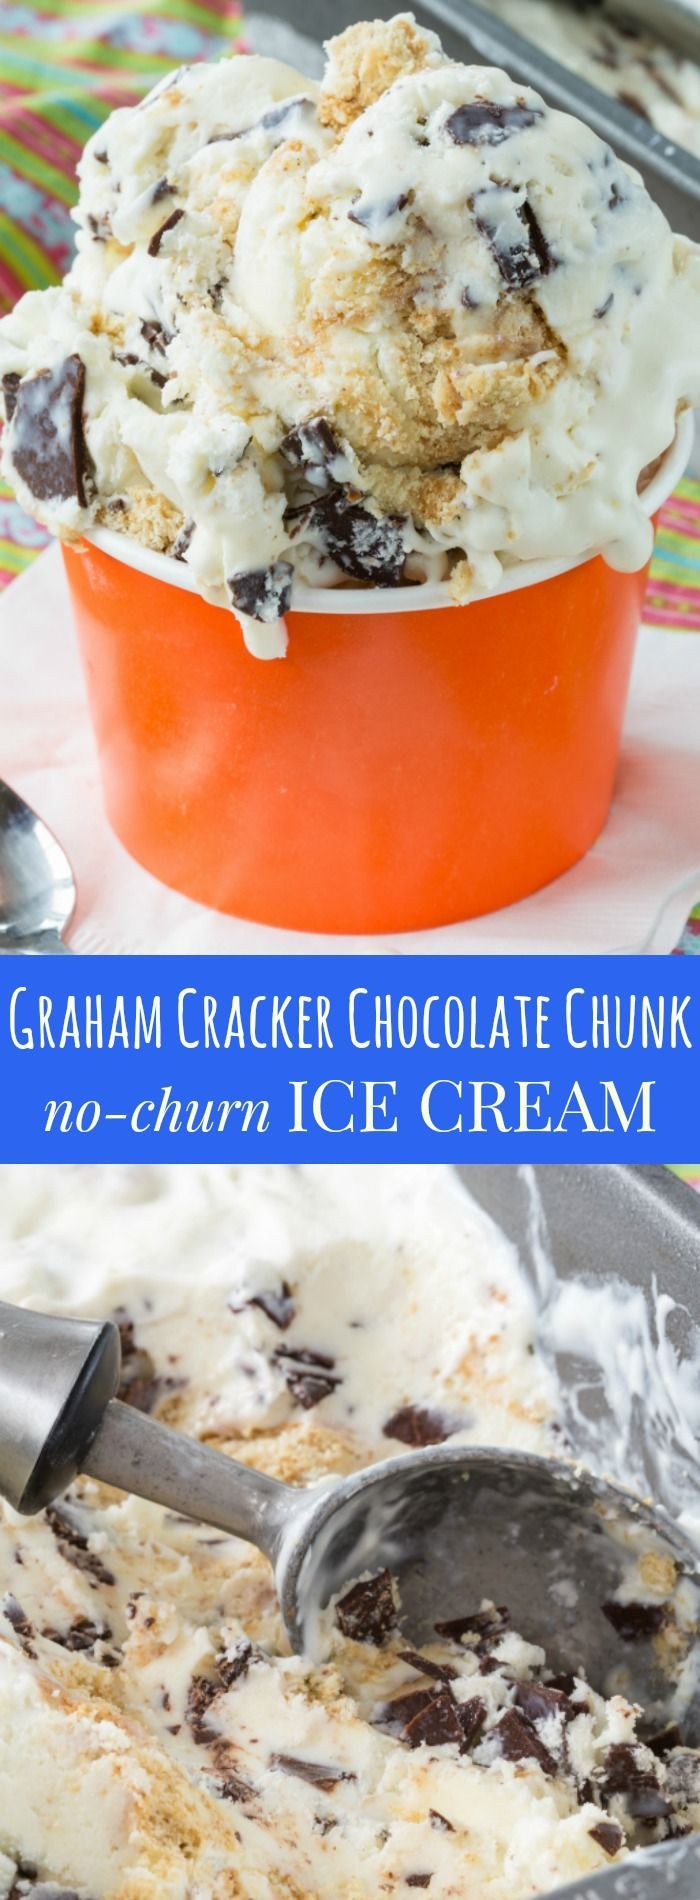 Cracker Chocolate Chunk No-Churn Ice Cream - if you like Bruster's Graham Central Station Ice Cream, you'll love this four-ingredient easy copycat recipe for a sweet dessert treat! |